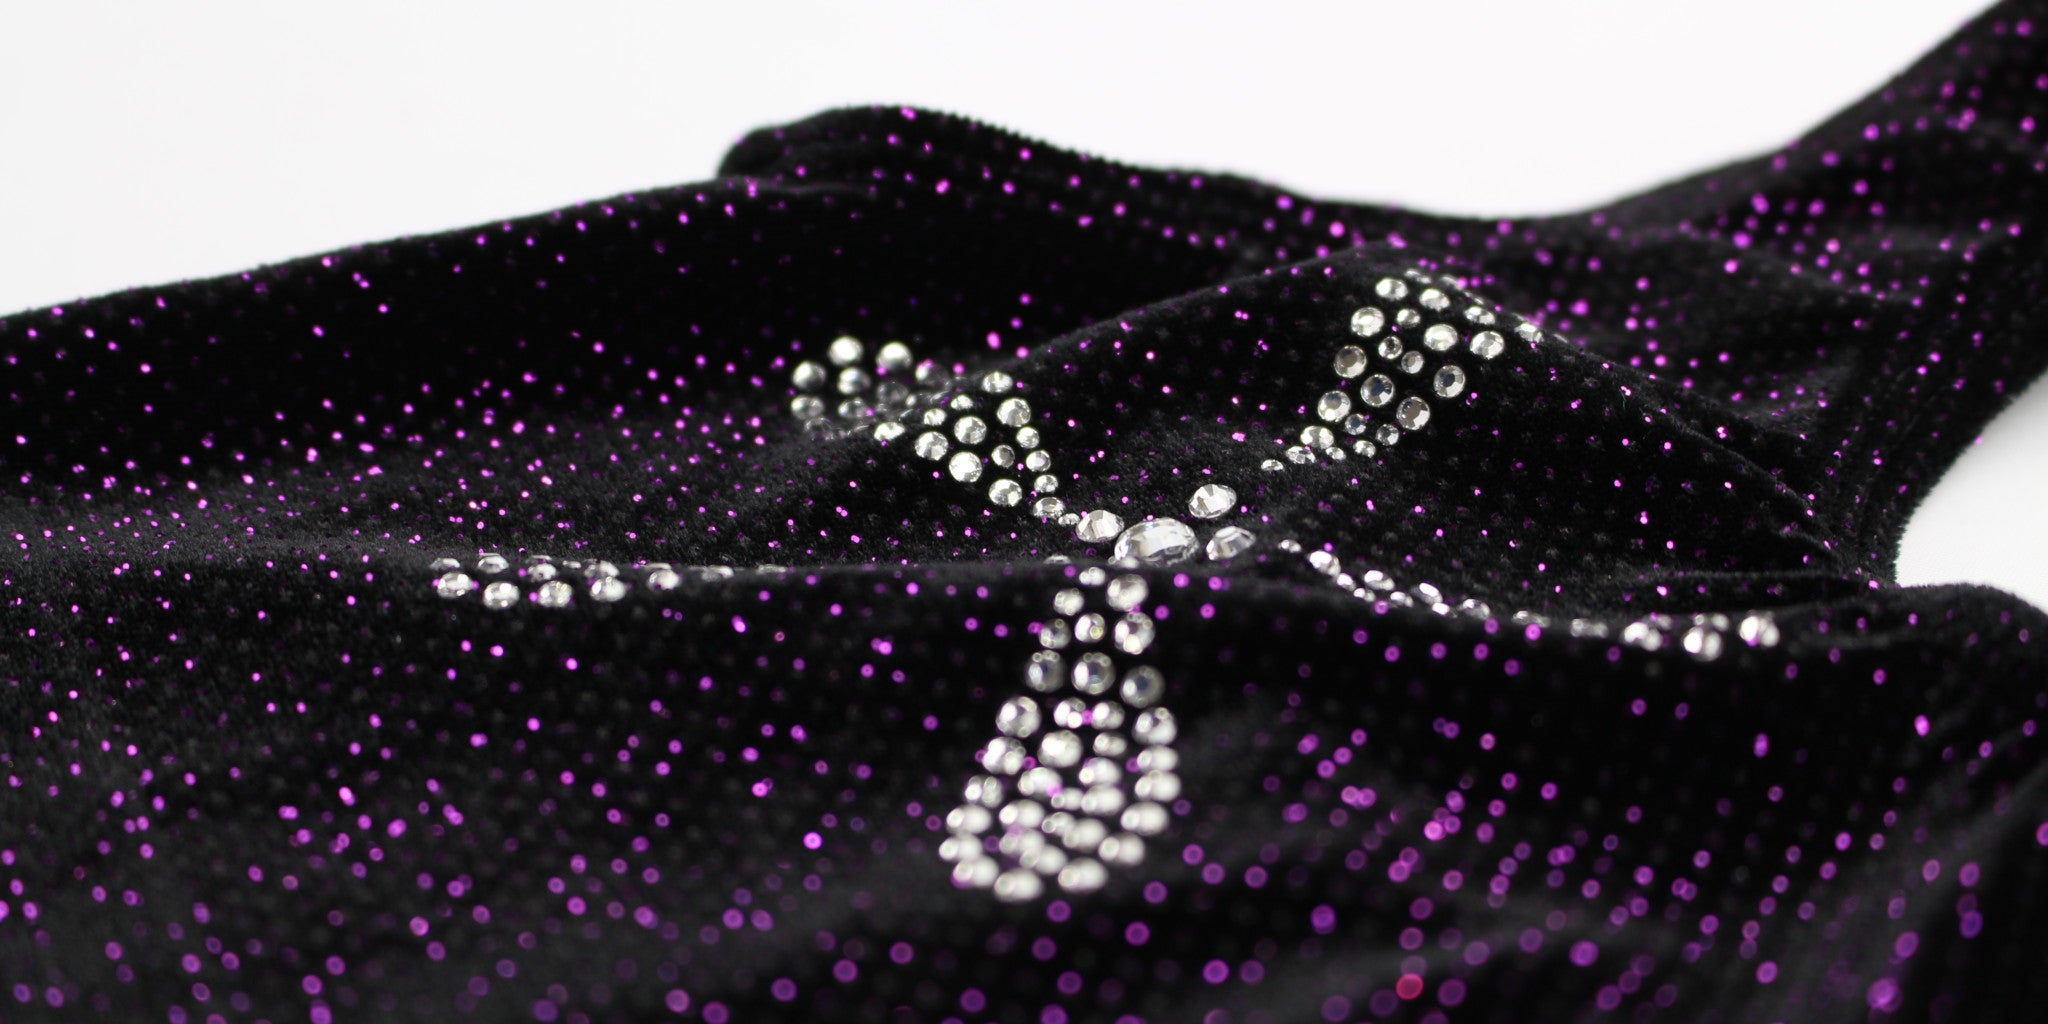 Gorgeous K-Lee Designs gymnastics leotard in black velvet with purple sparkles made and designed in Brisbane Australia